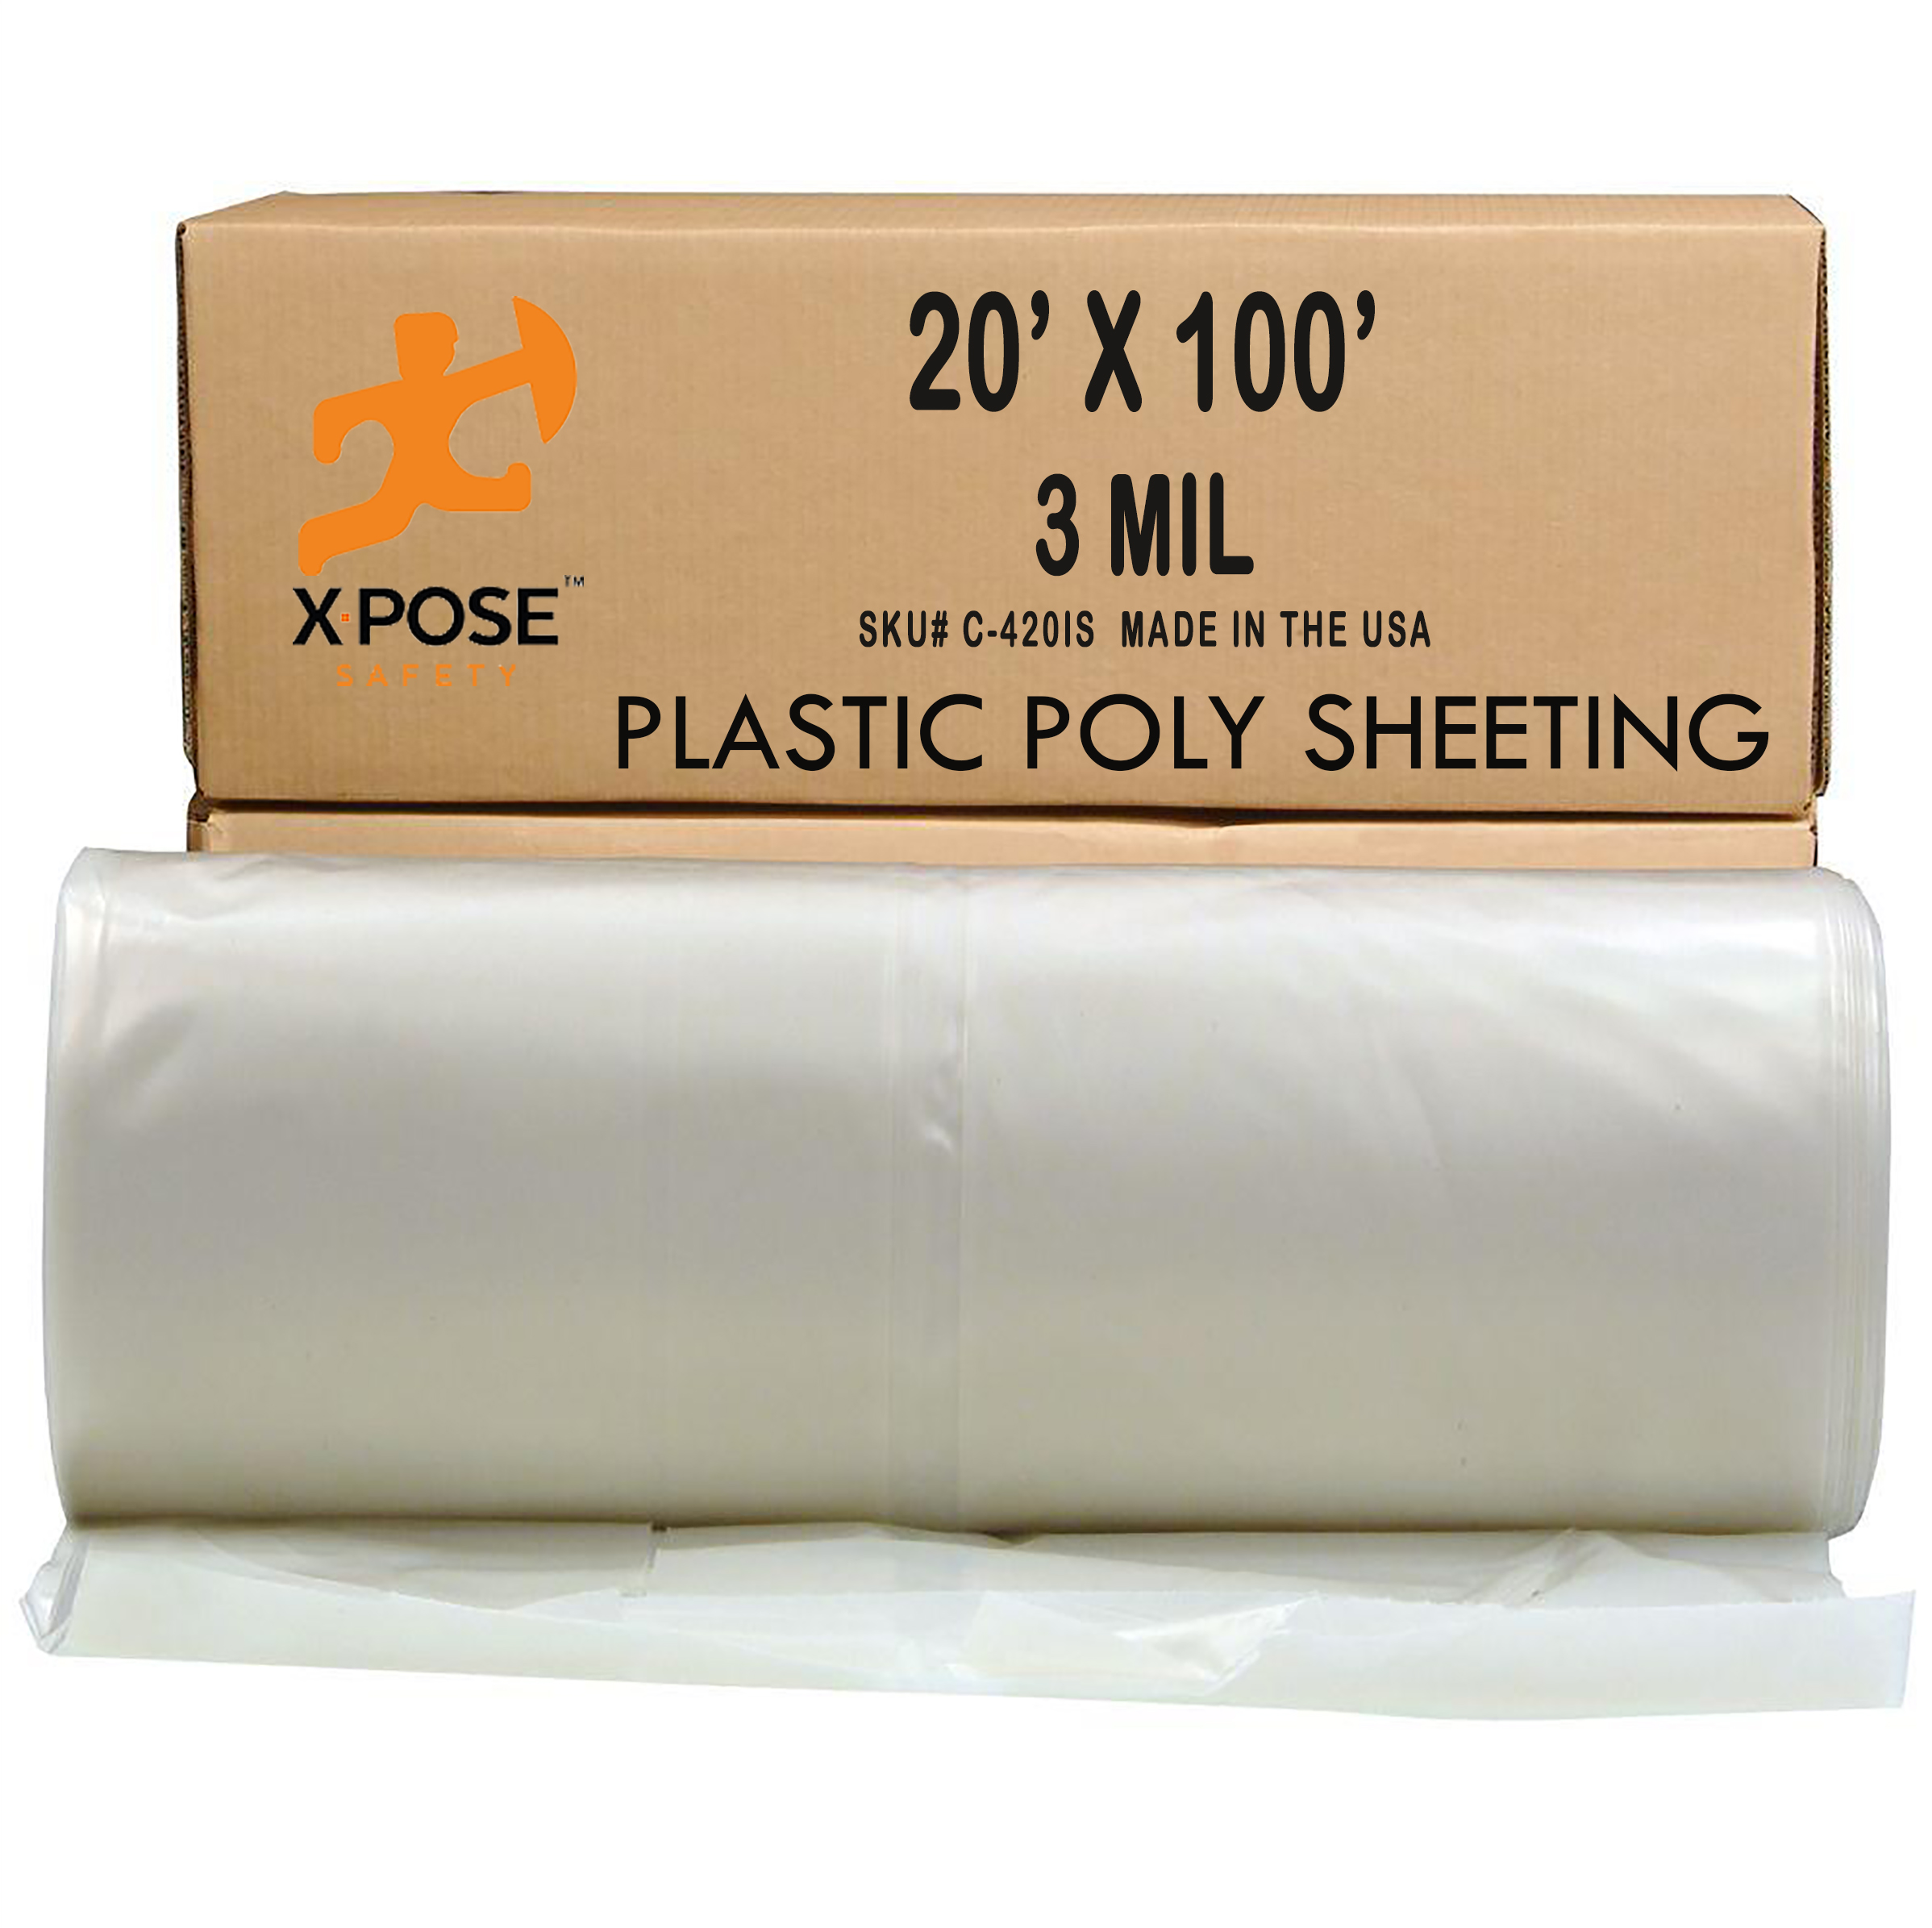 Plastic Poly Sheeting 20' x 100', 3 mil C-420IS